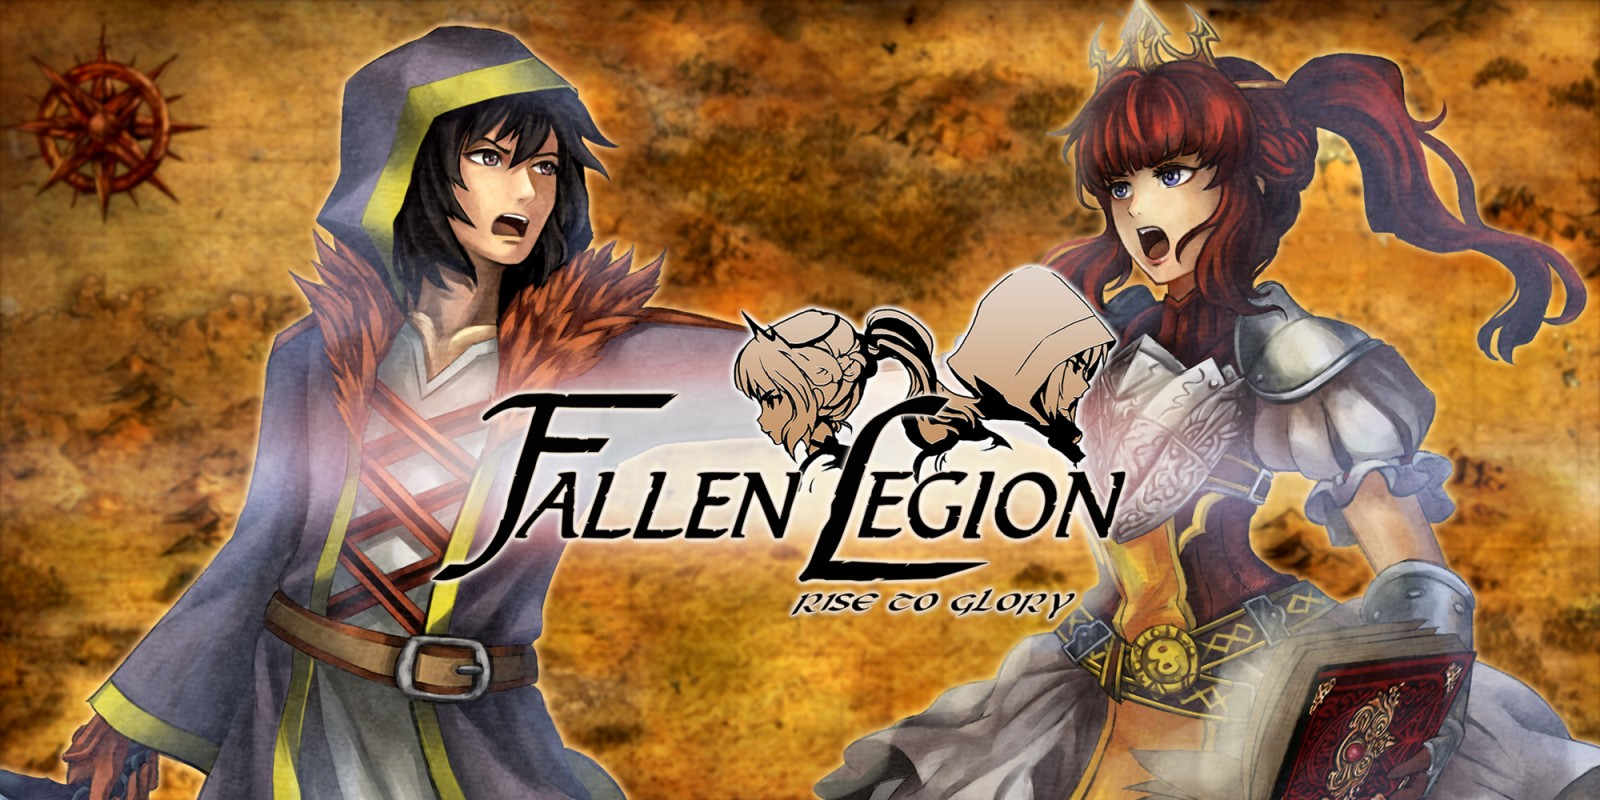 Fallen Legion: Rise to Glory